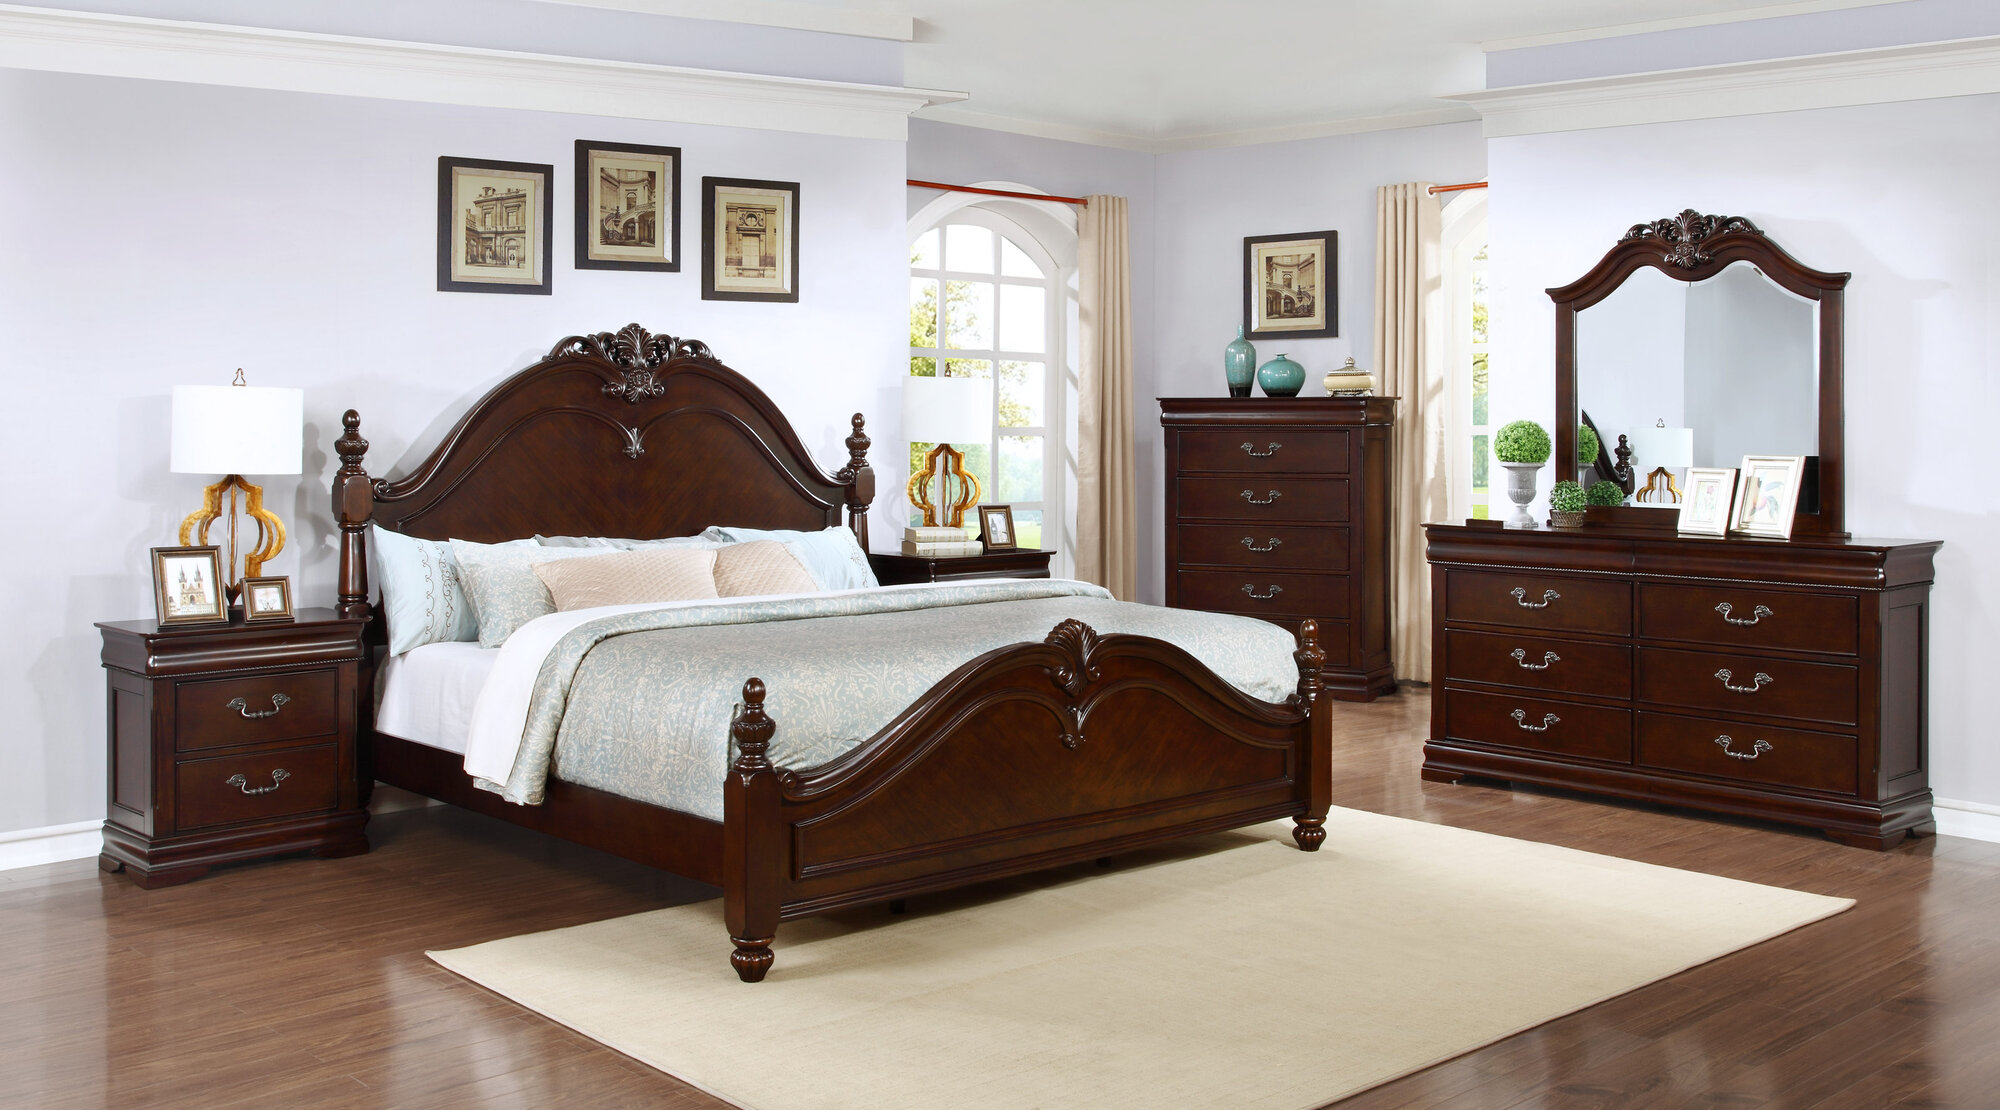 Best quality furniture panel 4 piece bedroom set ebay for Best bedroom furniture